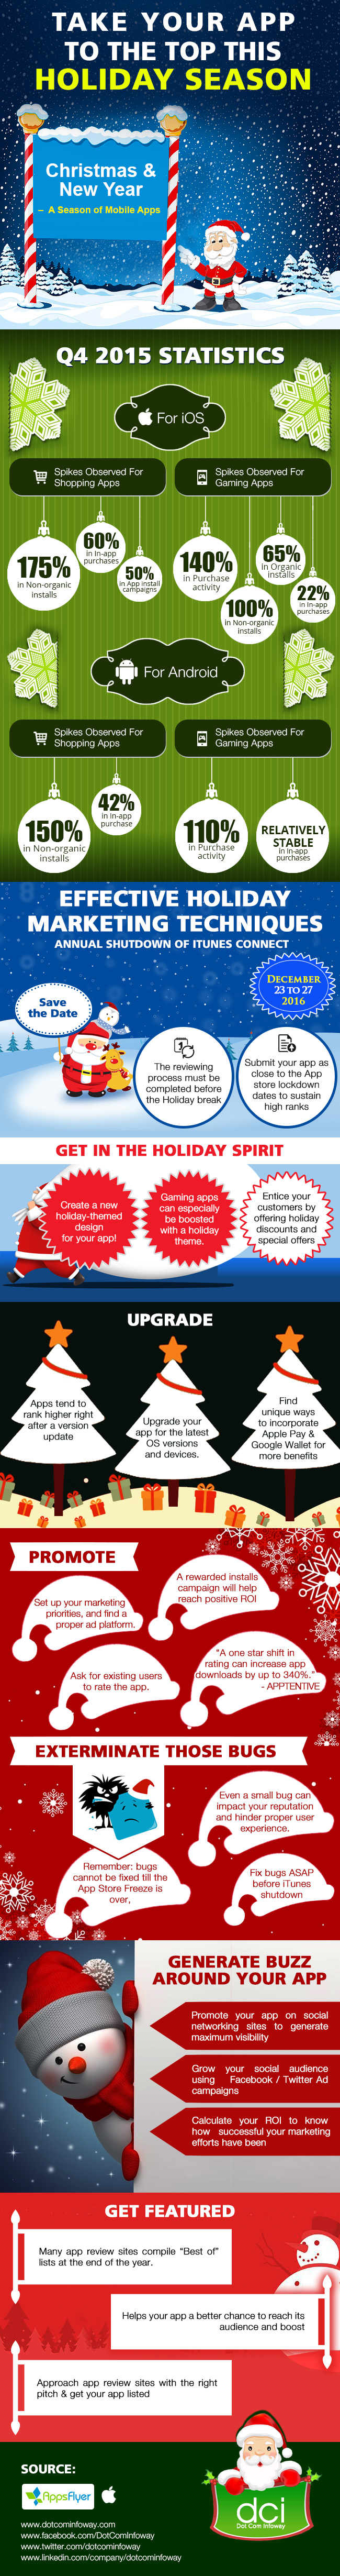 """""""infographic-take-your-app-to-top-this-holiday-season"""""""